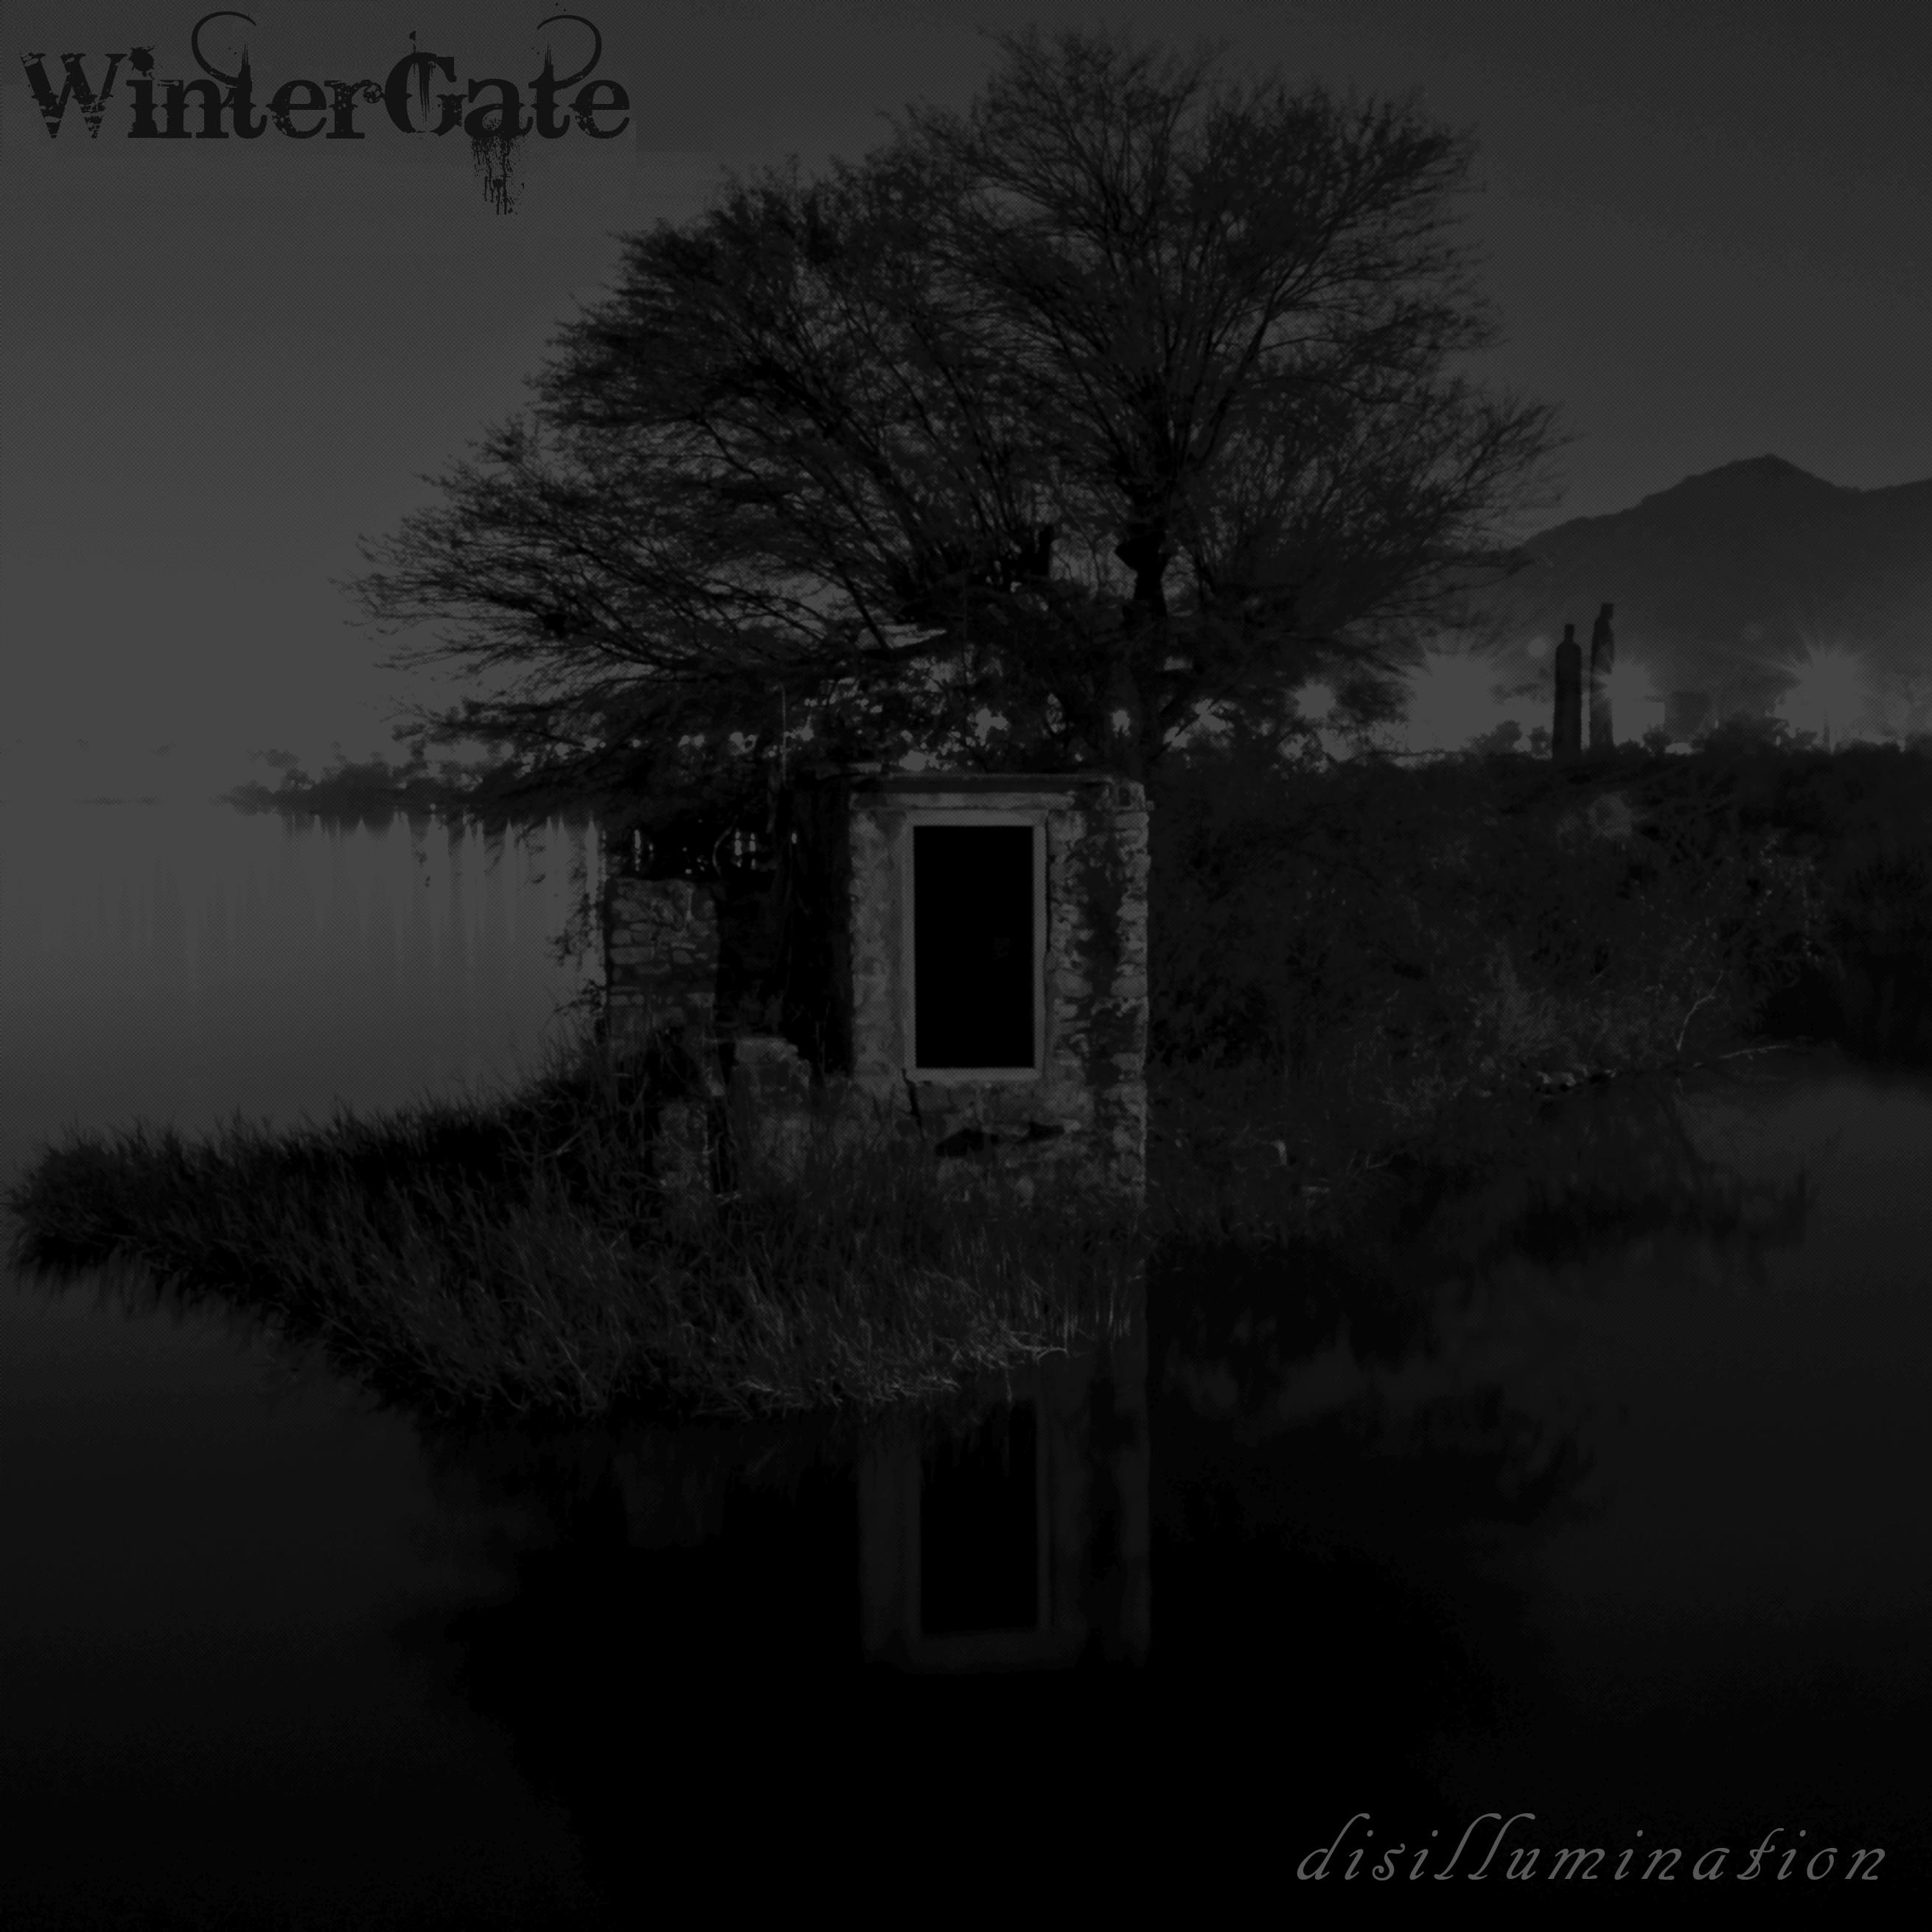 Jaipur's Progressive Metal band Winter Gate released their debut EP